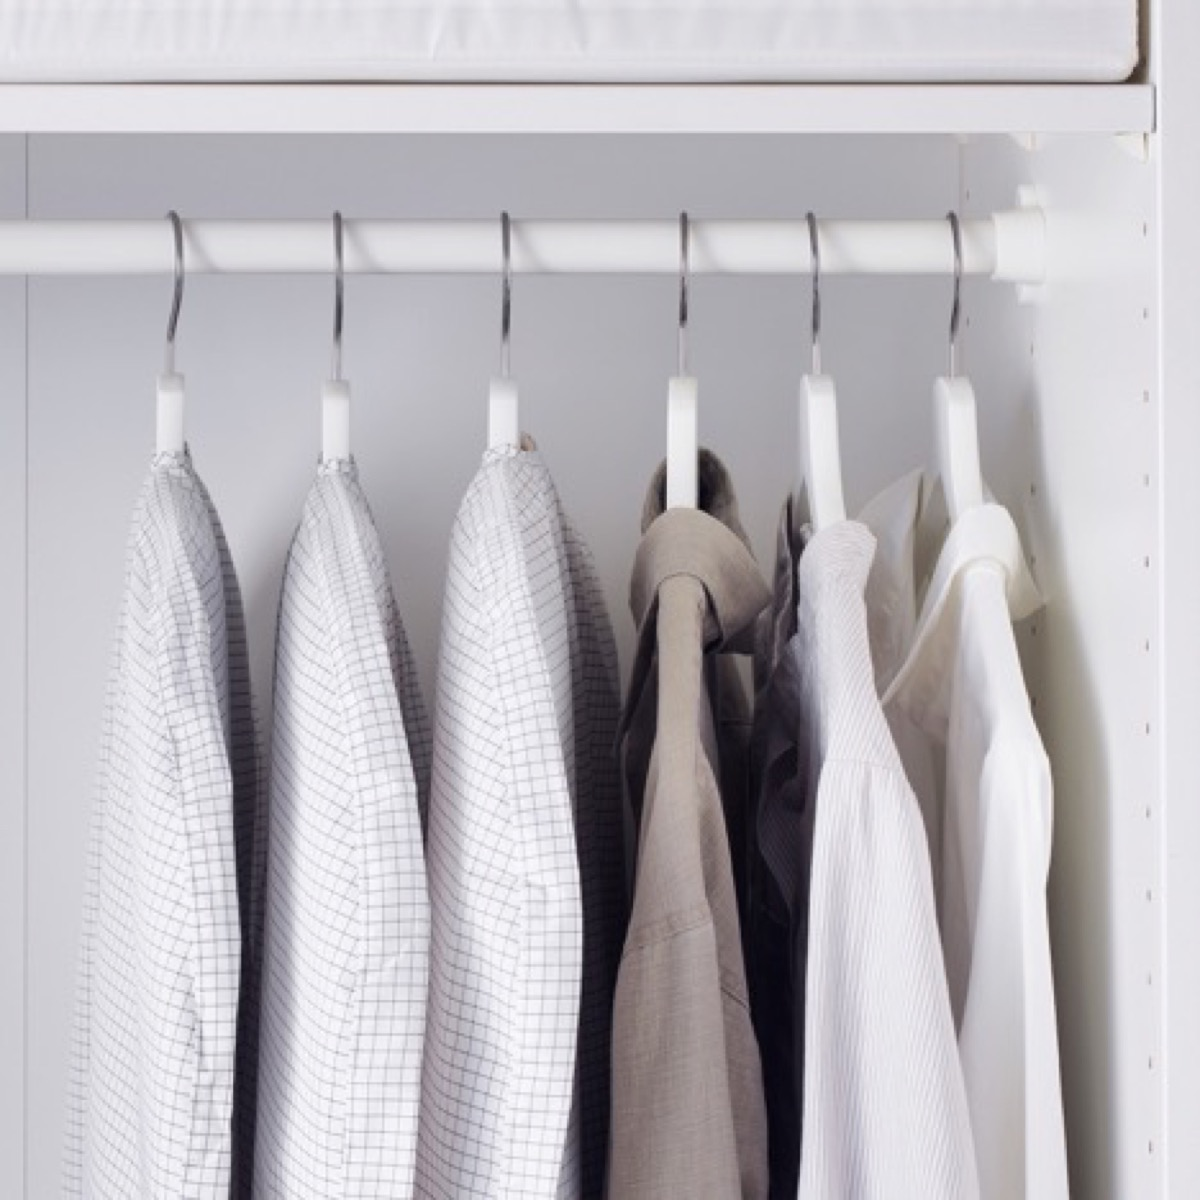 Clothes with covers in closet